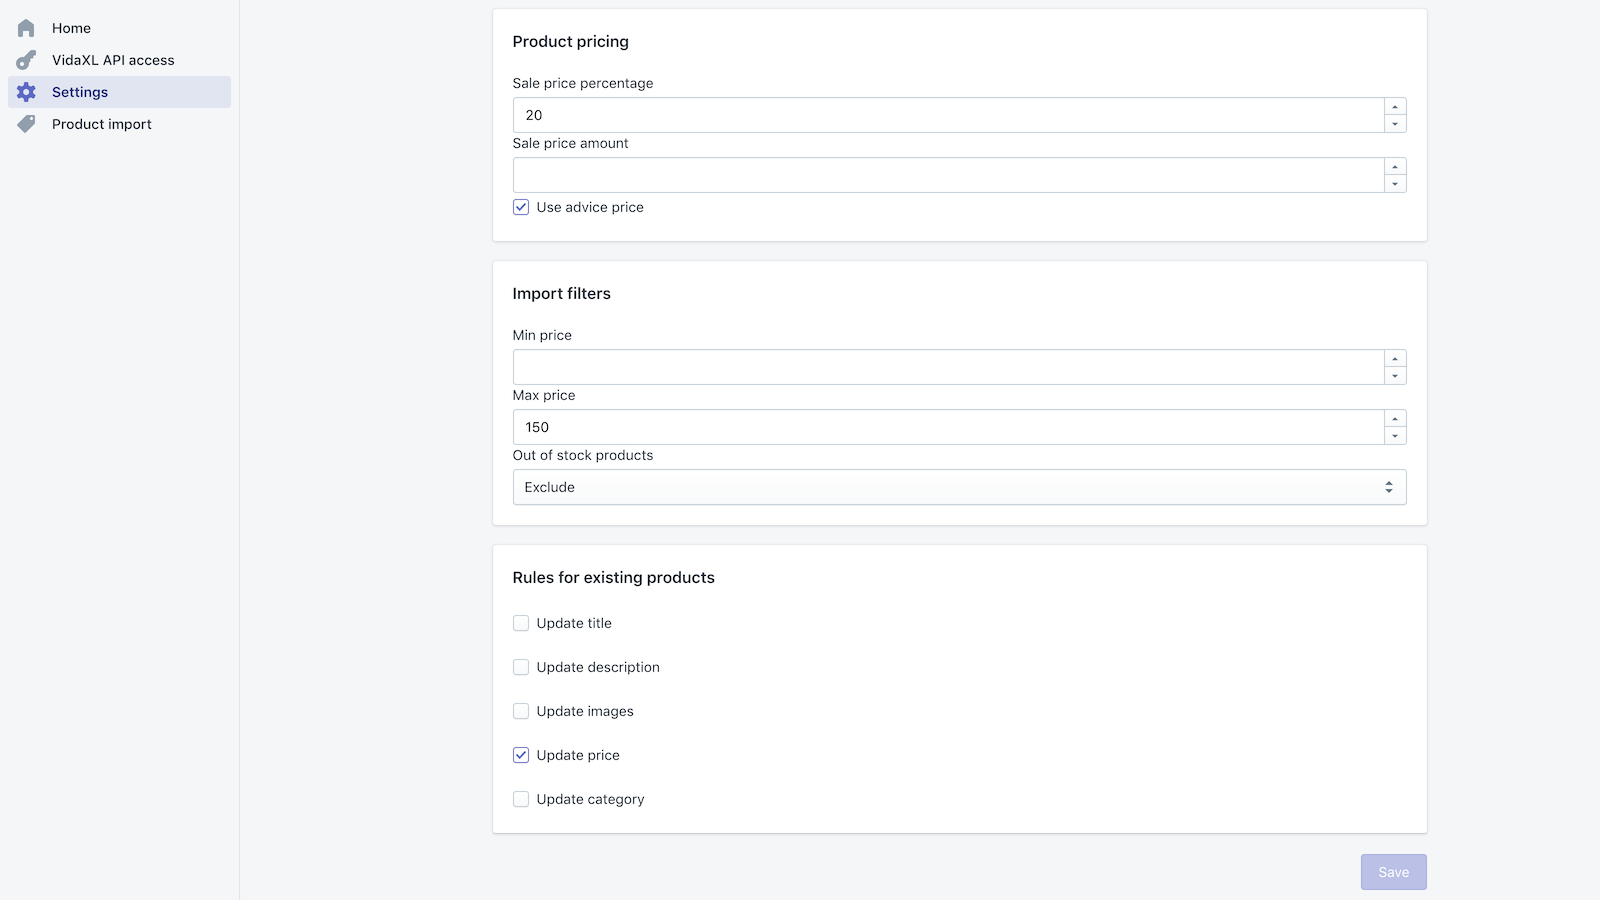 vidaXL settings for importing dropshipping products in Shopify